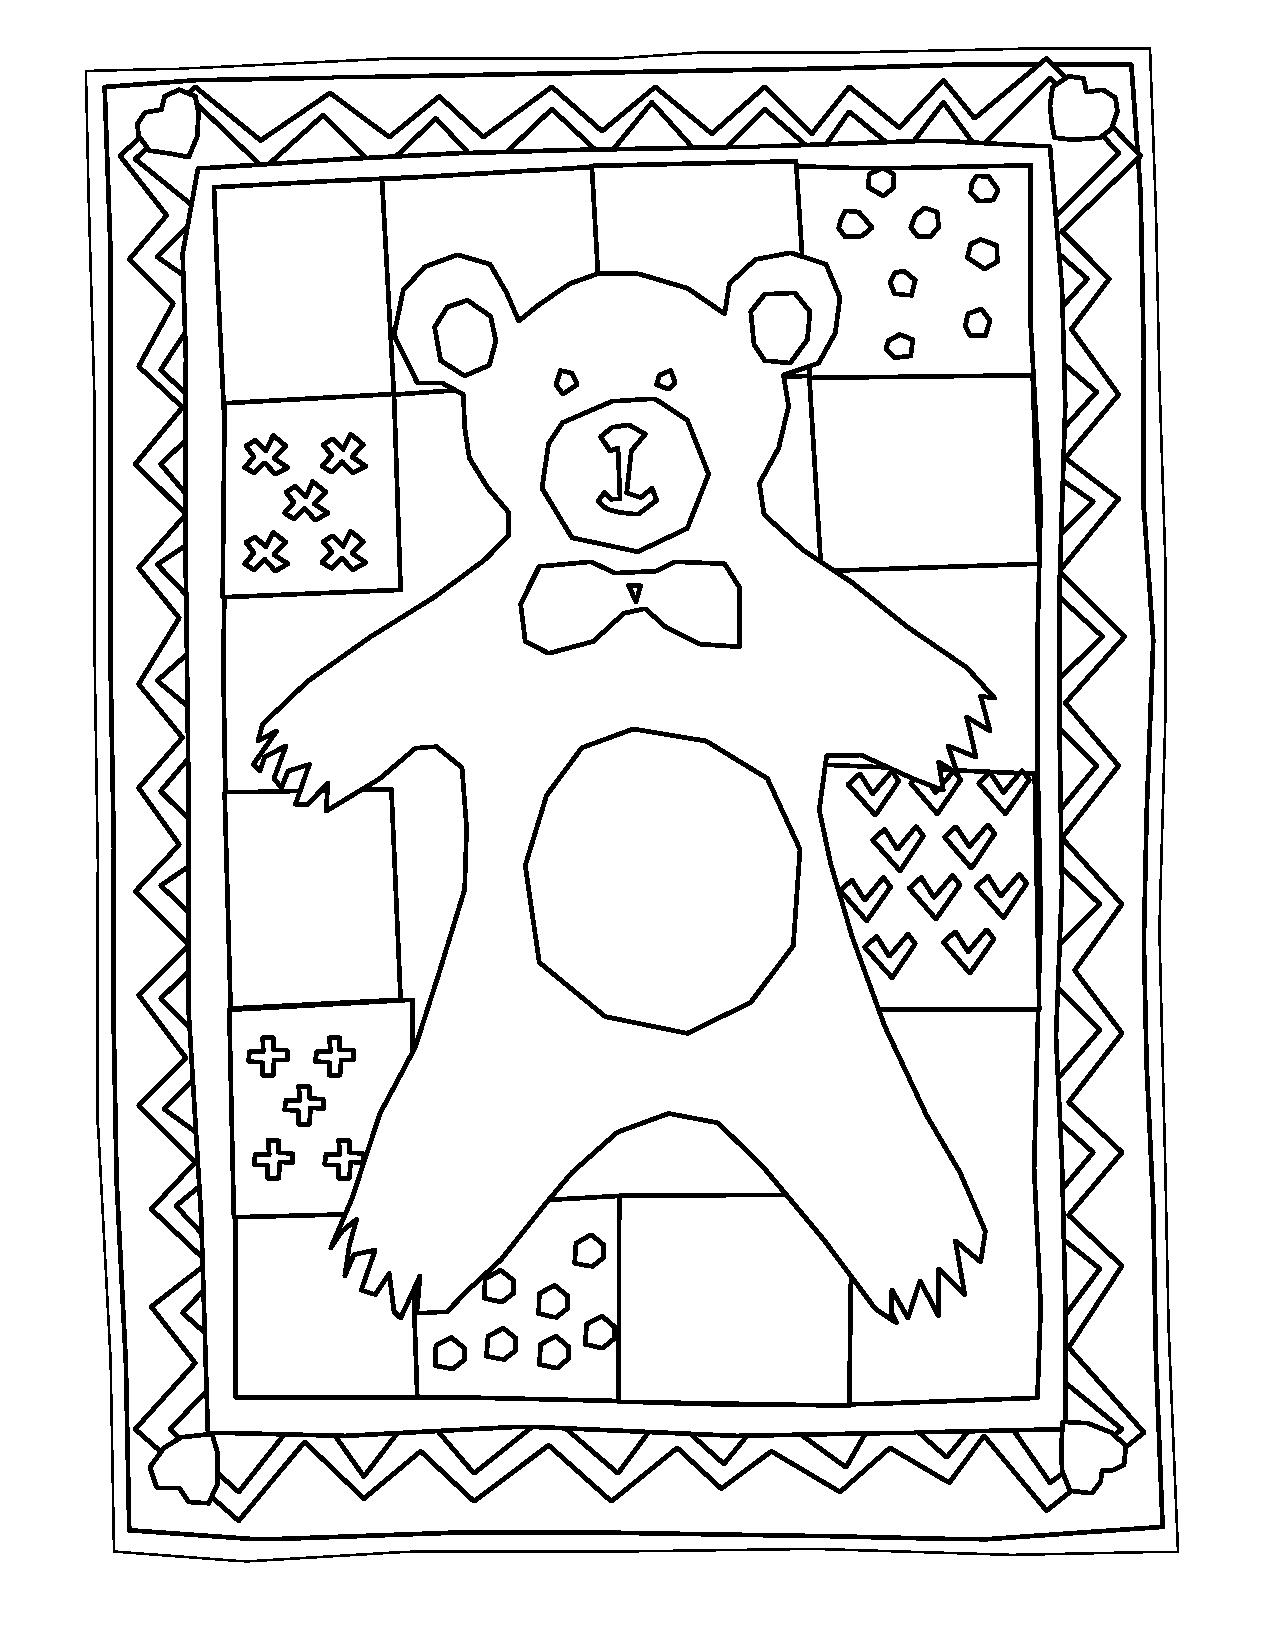 coloring page quilt amish coloring pages at getcoloringscom free printable coloring quilt page